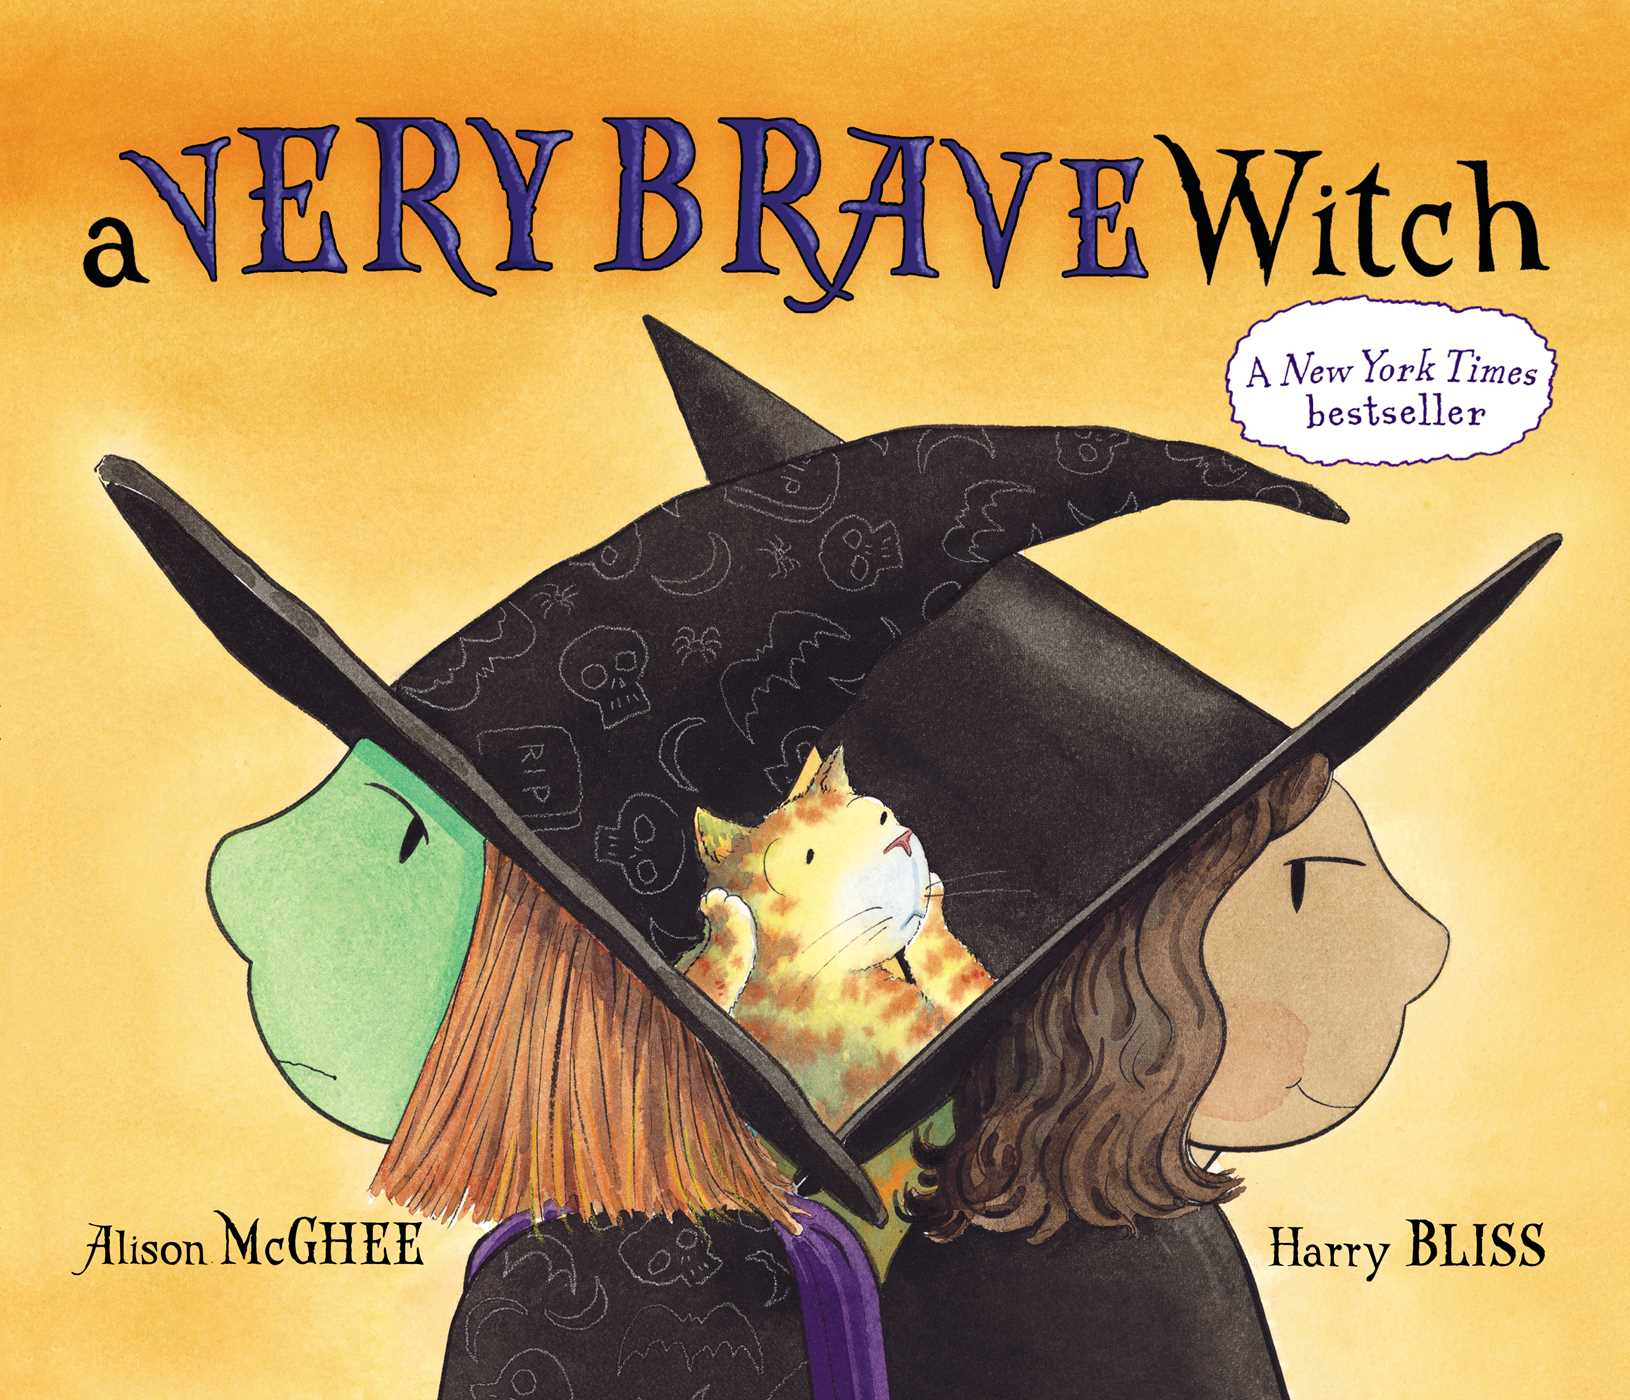 A very brave witch 9781442439269 hr